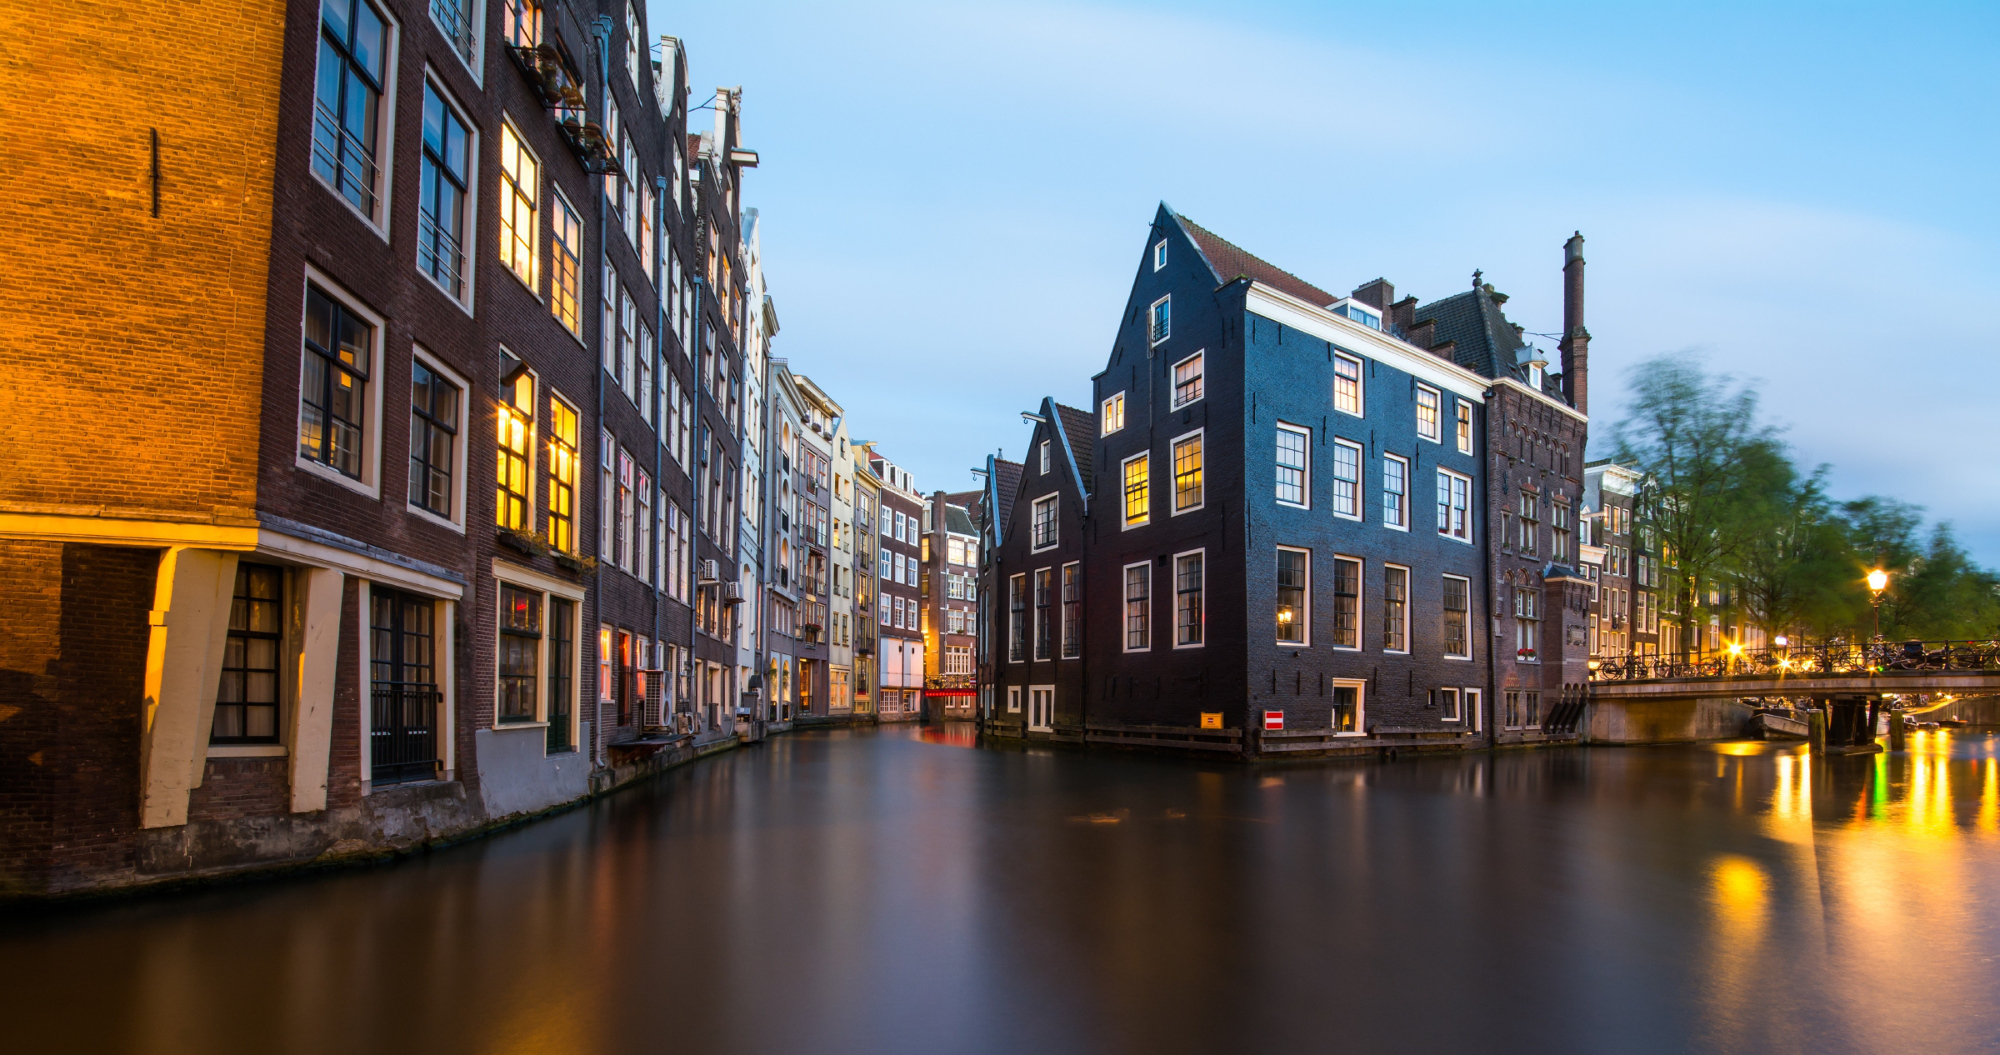 Norwegian will introduce flights to Amsterdam from New York City in 2018.